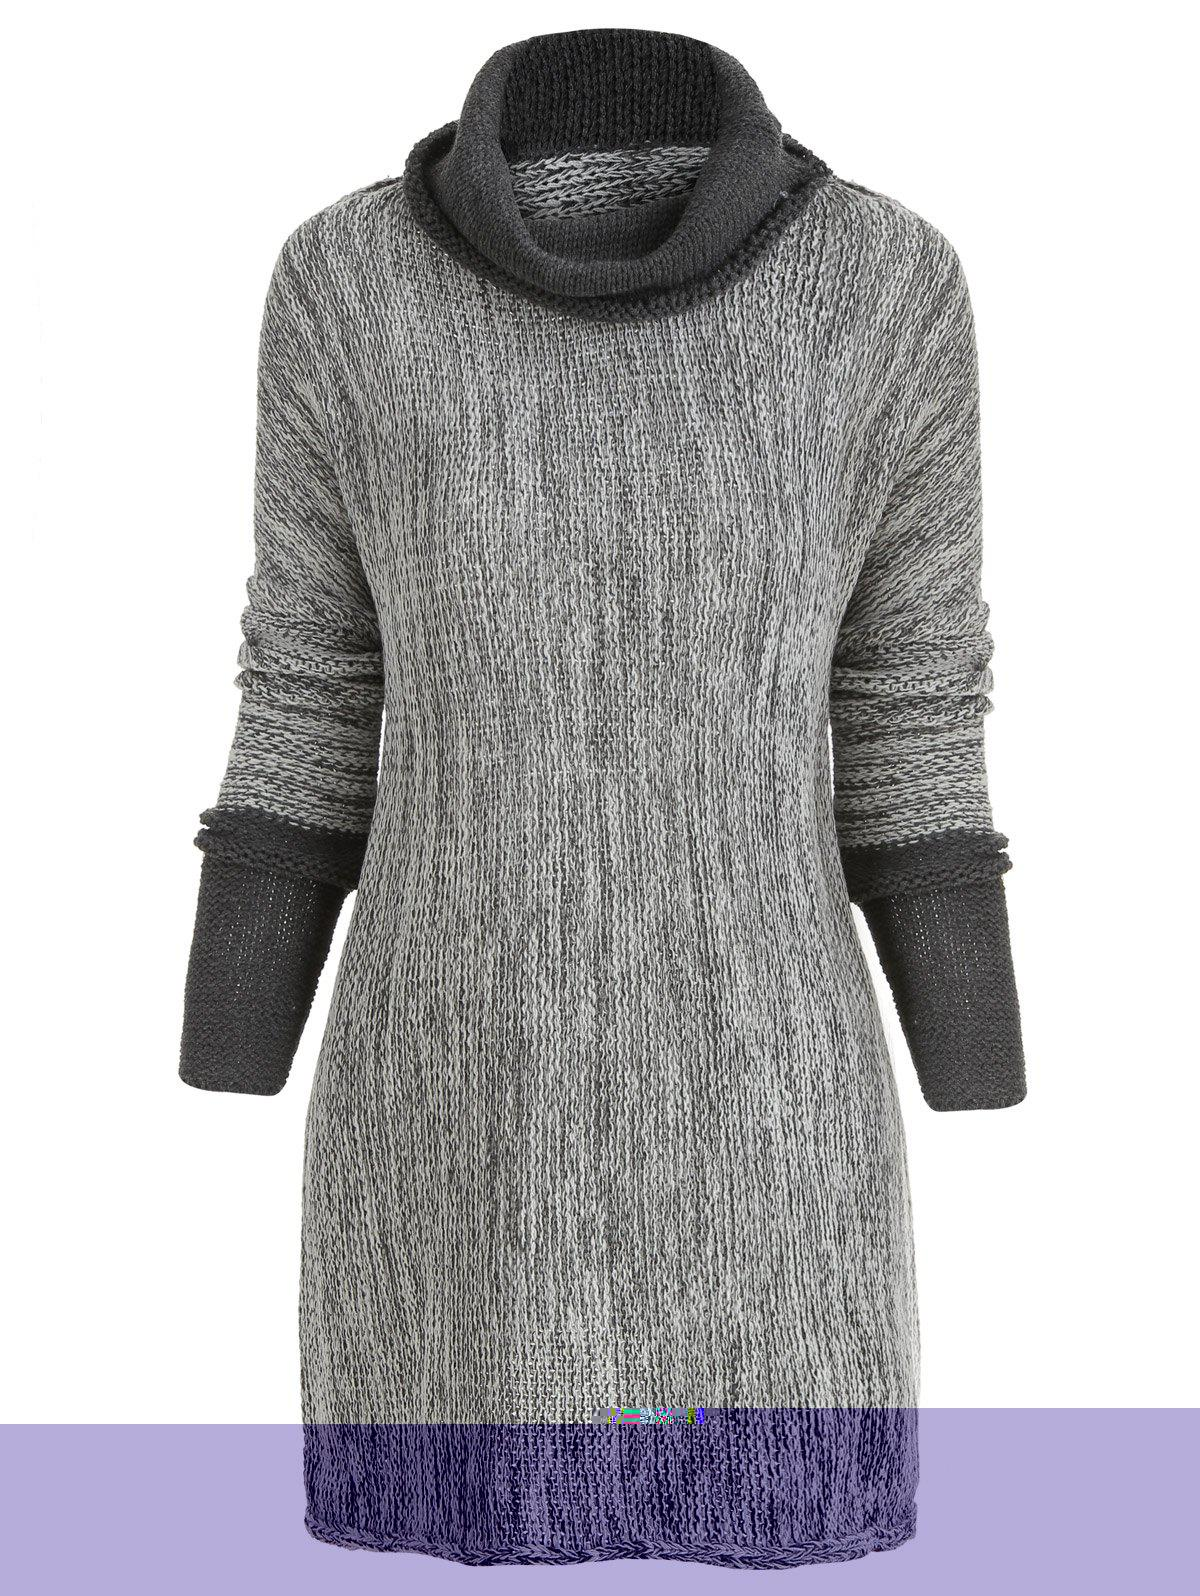 Best Contrast Cowl Neck Tunic Sweater